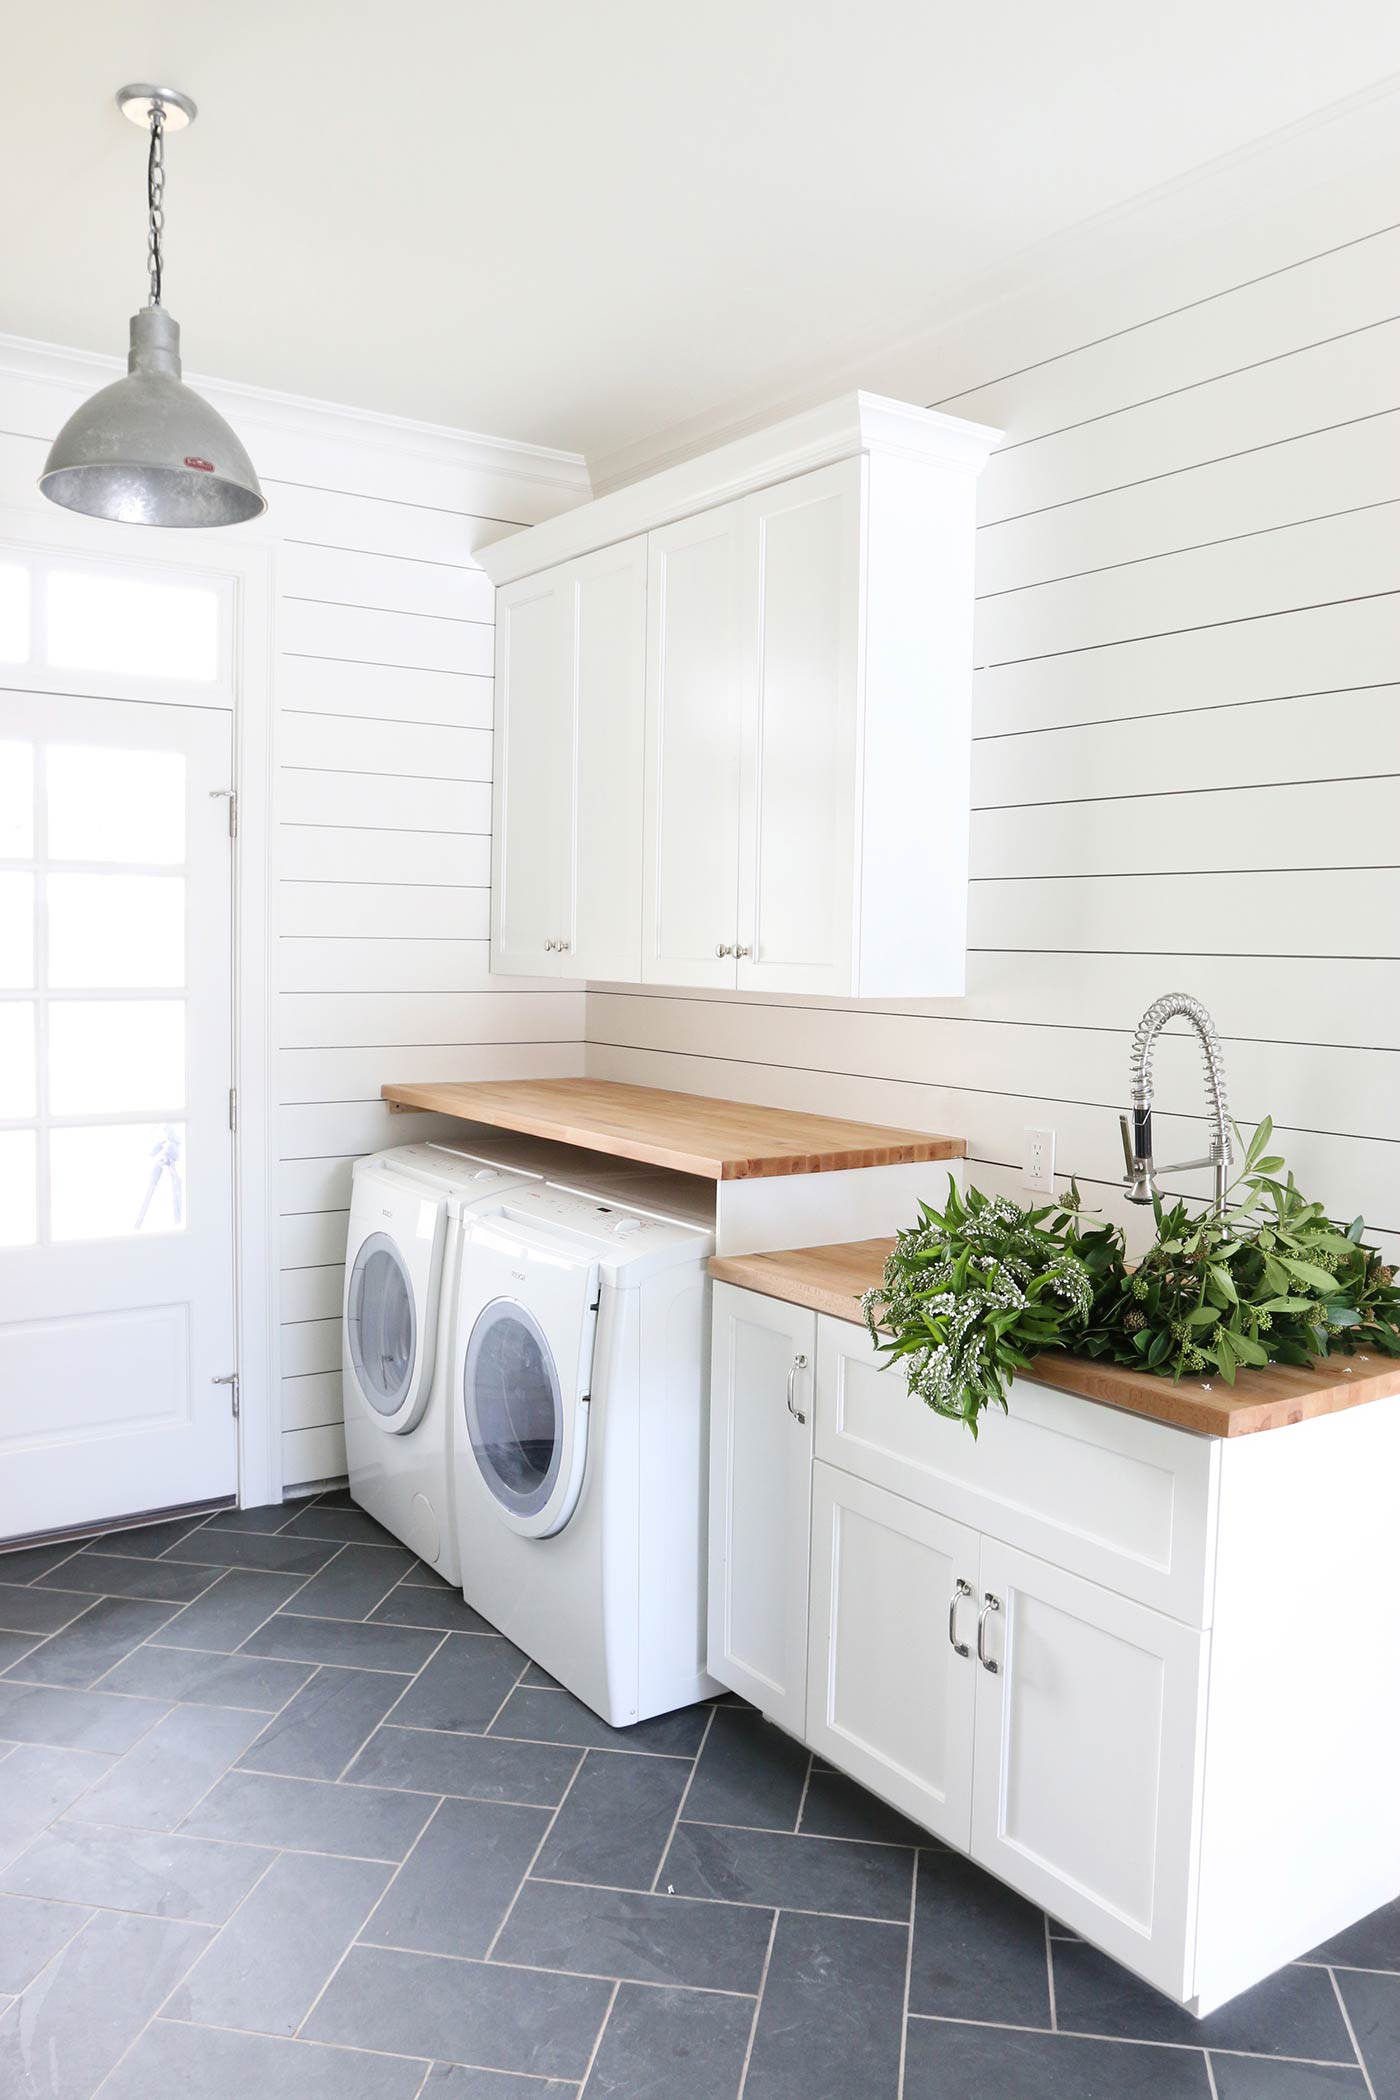 White Paint Colors: 5 Favorites for Shiplap | The Harper House